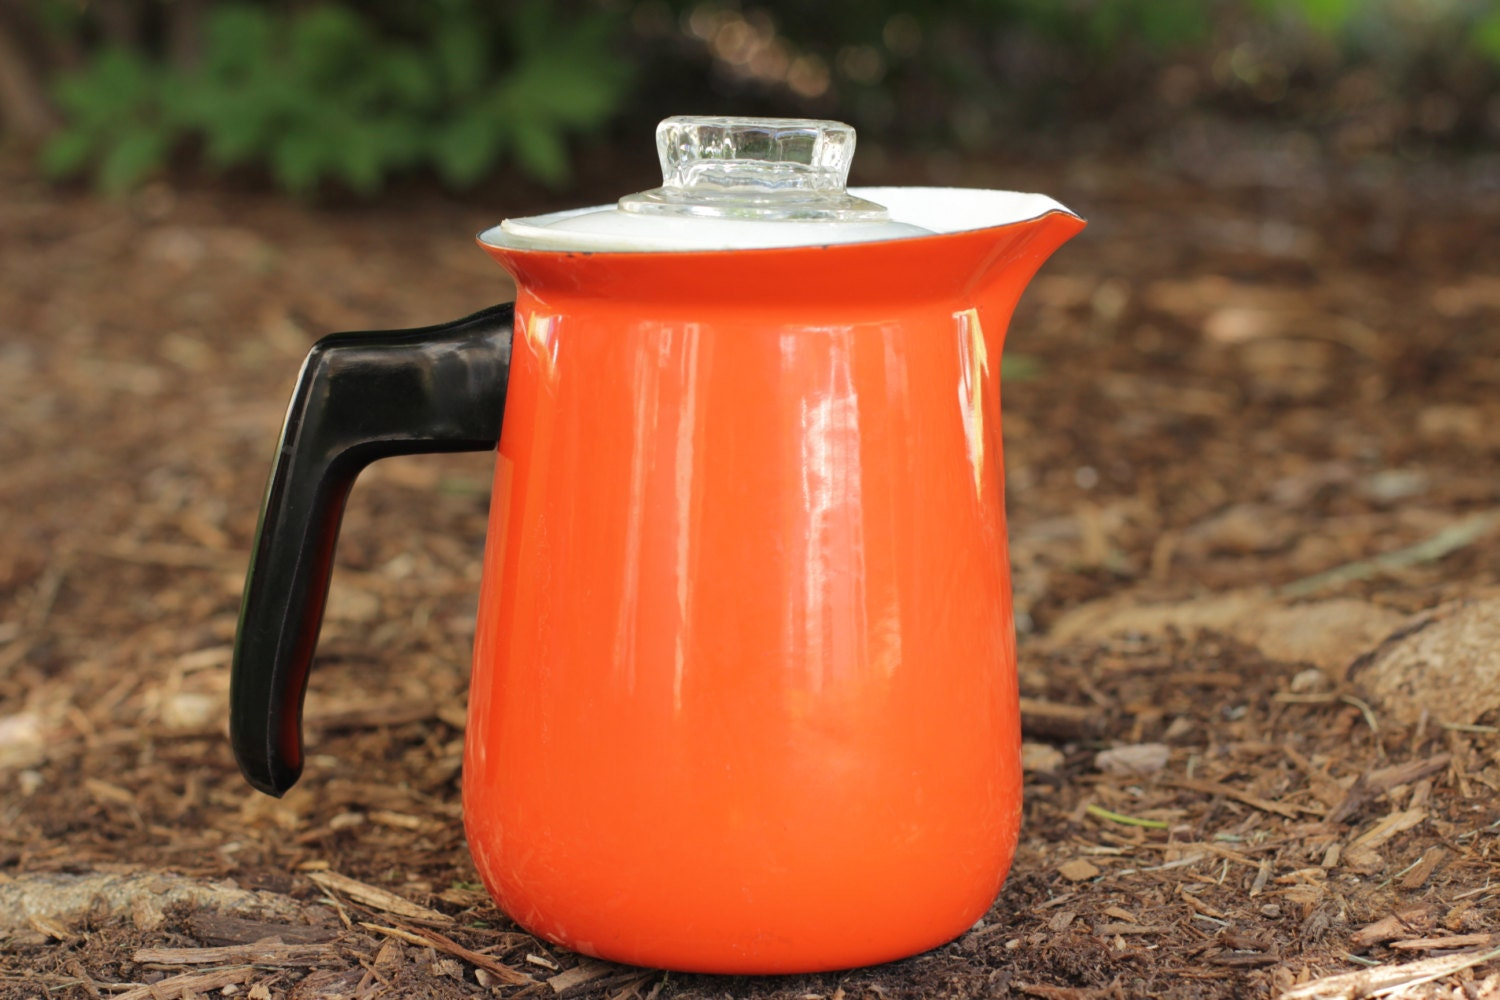 Orange Red Enamel Percolator with Plastic Lid and Handle - WildMushrooms